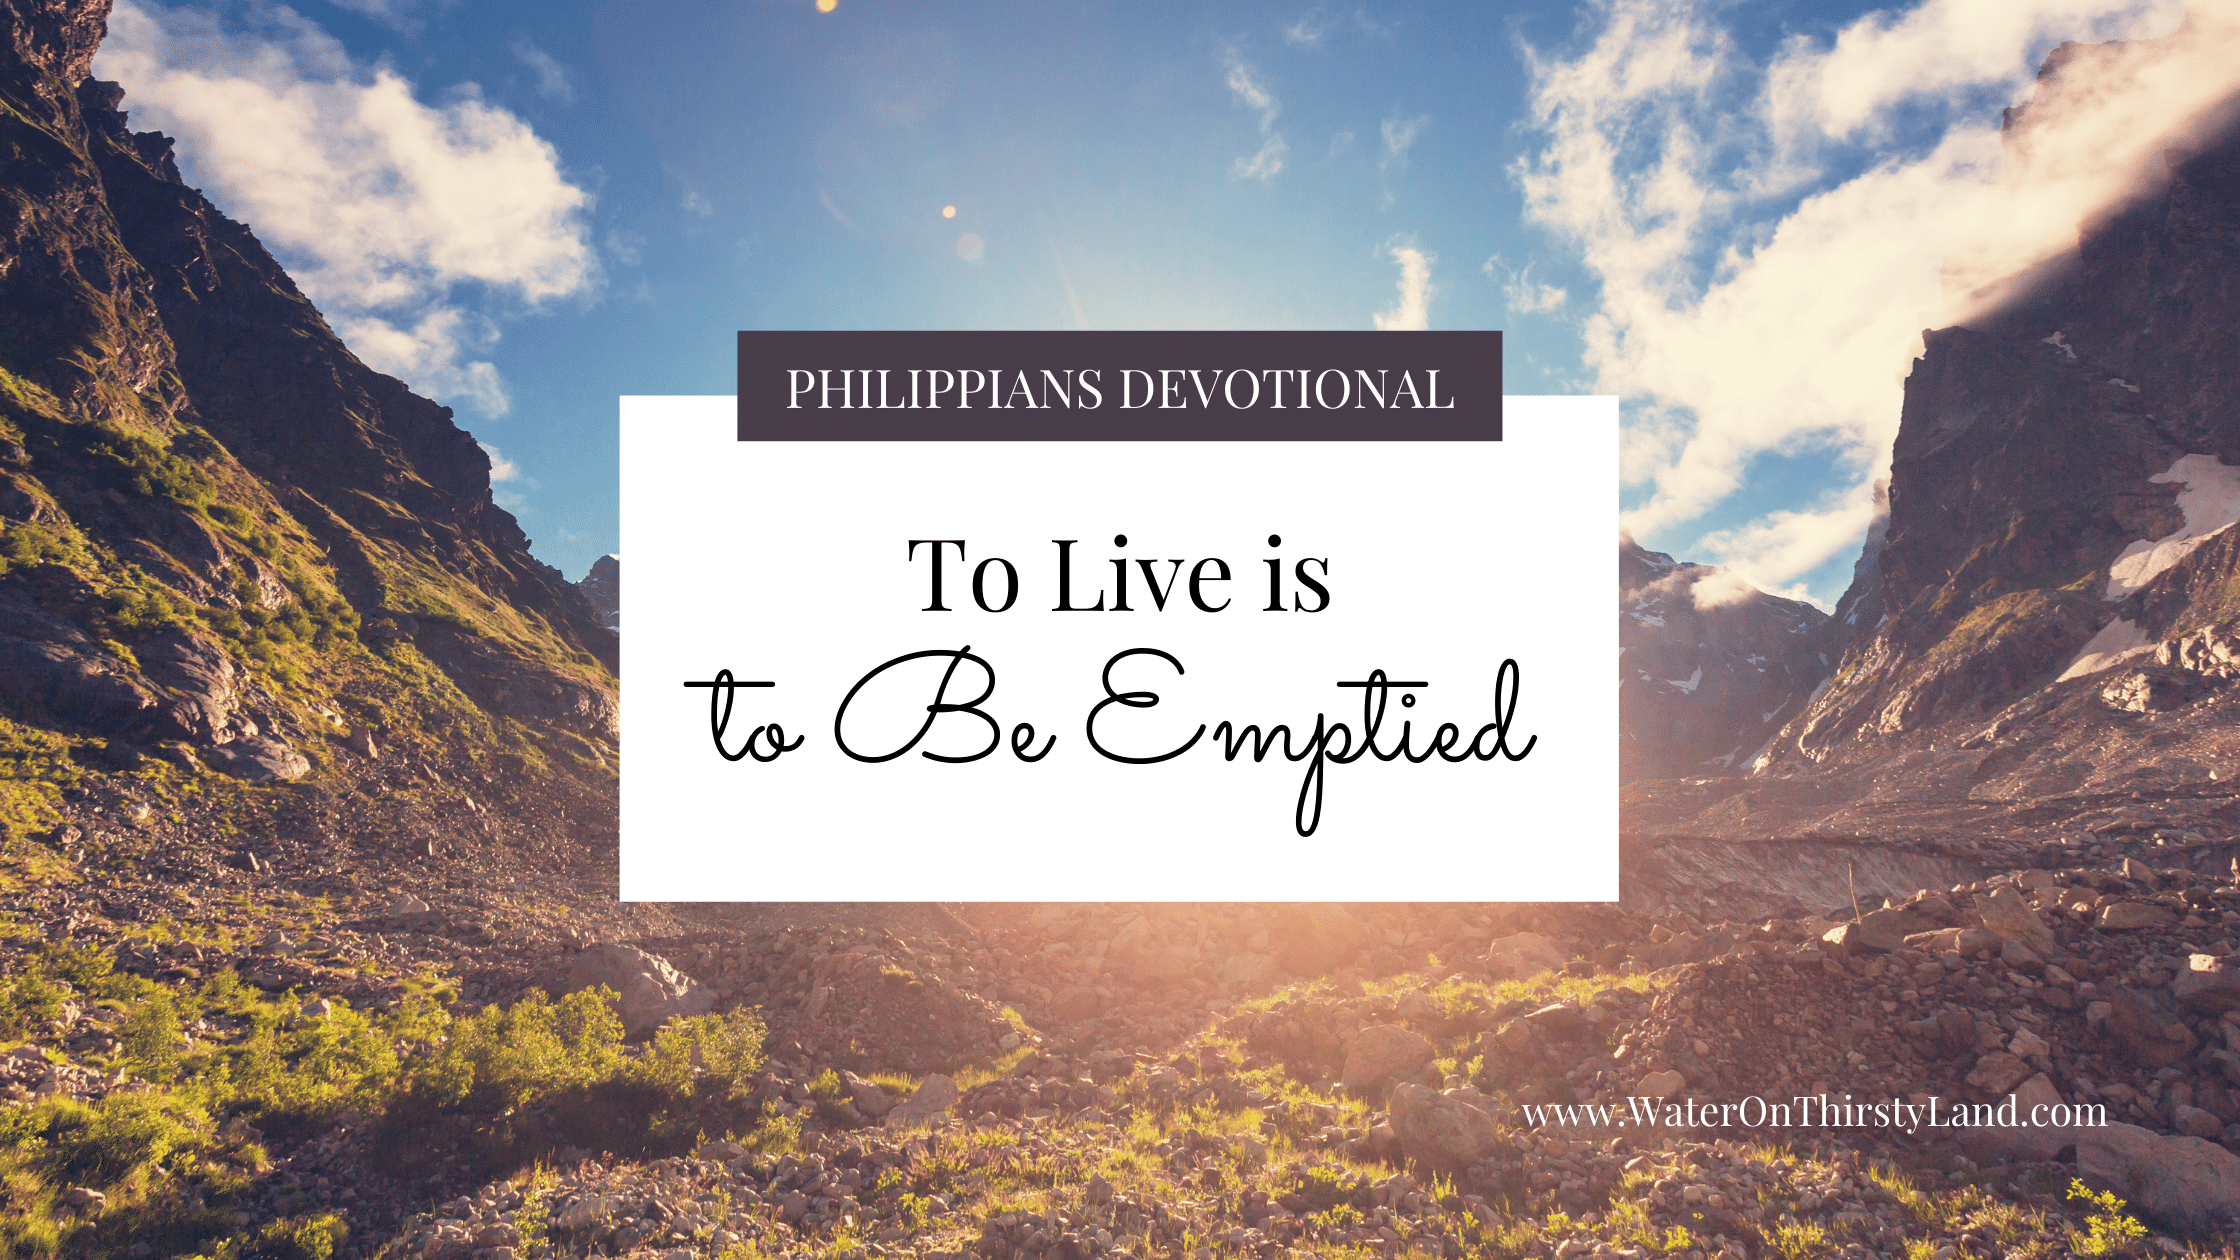 To live is to be emptied